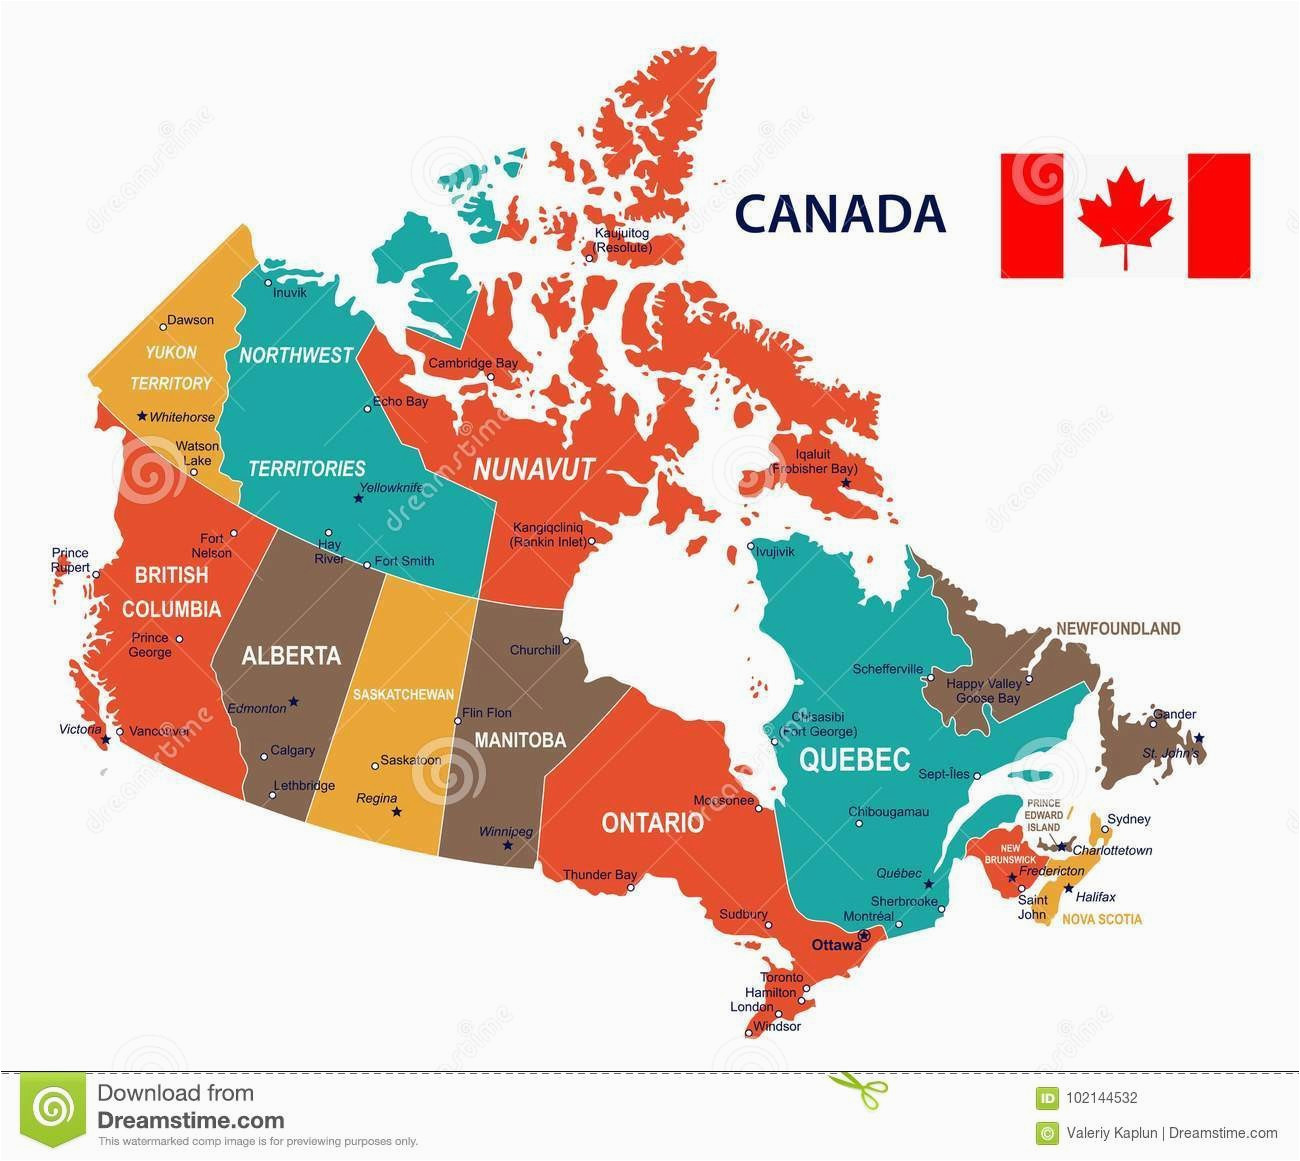 top 10 punto medio noticias world map canada toronto